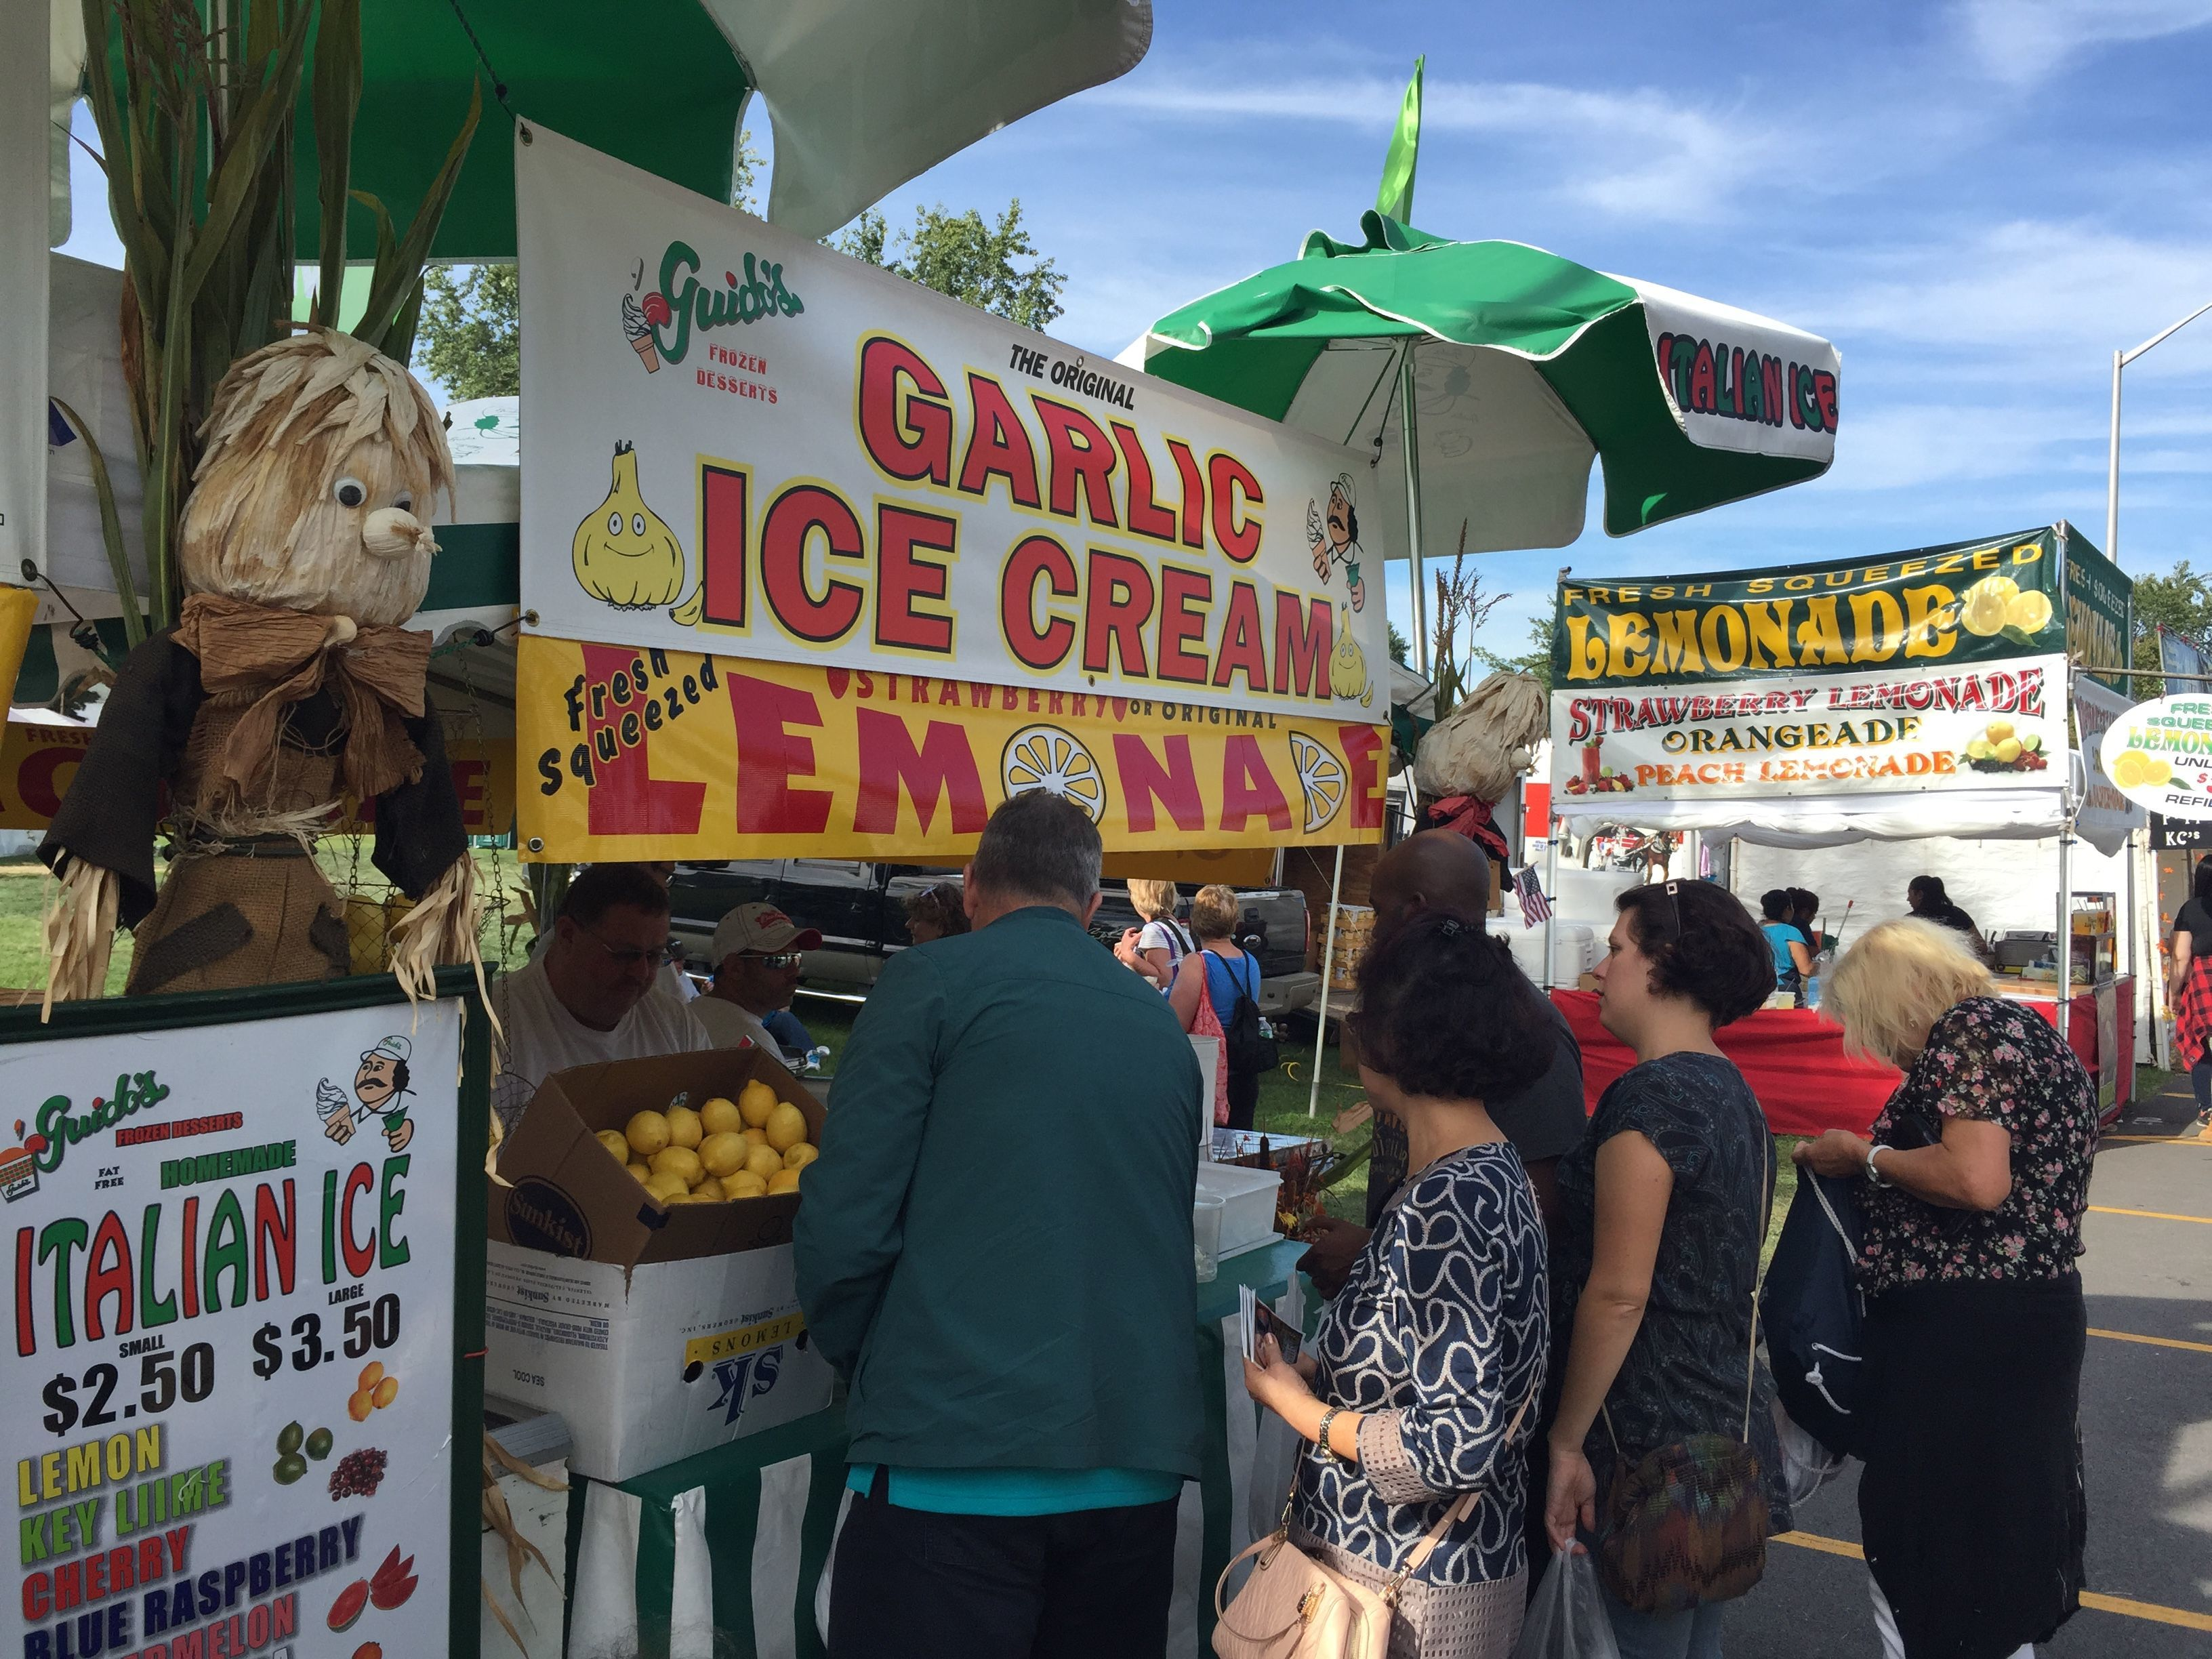 Garlic ice cream is one of the many garlic-infused foods to be found at the annual Hudson Valley Garlic Festival. This year's two-day event is set for Sept. 28-29.